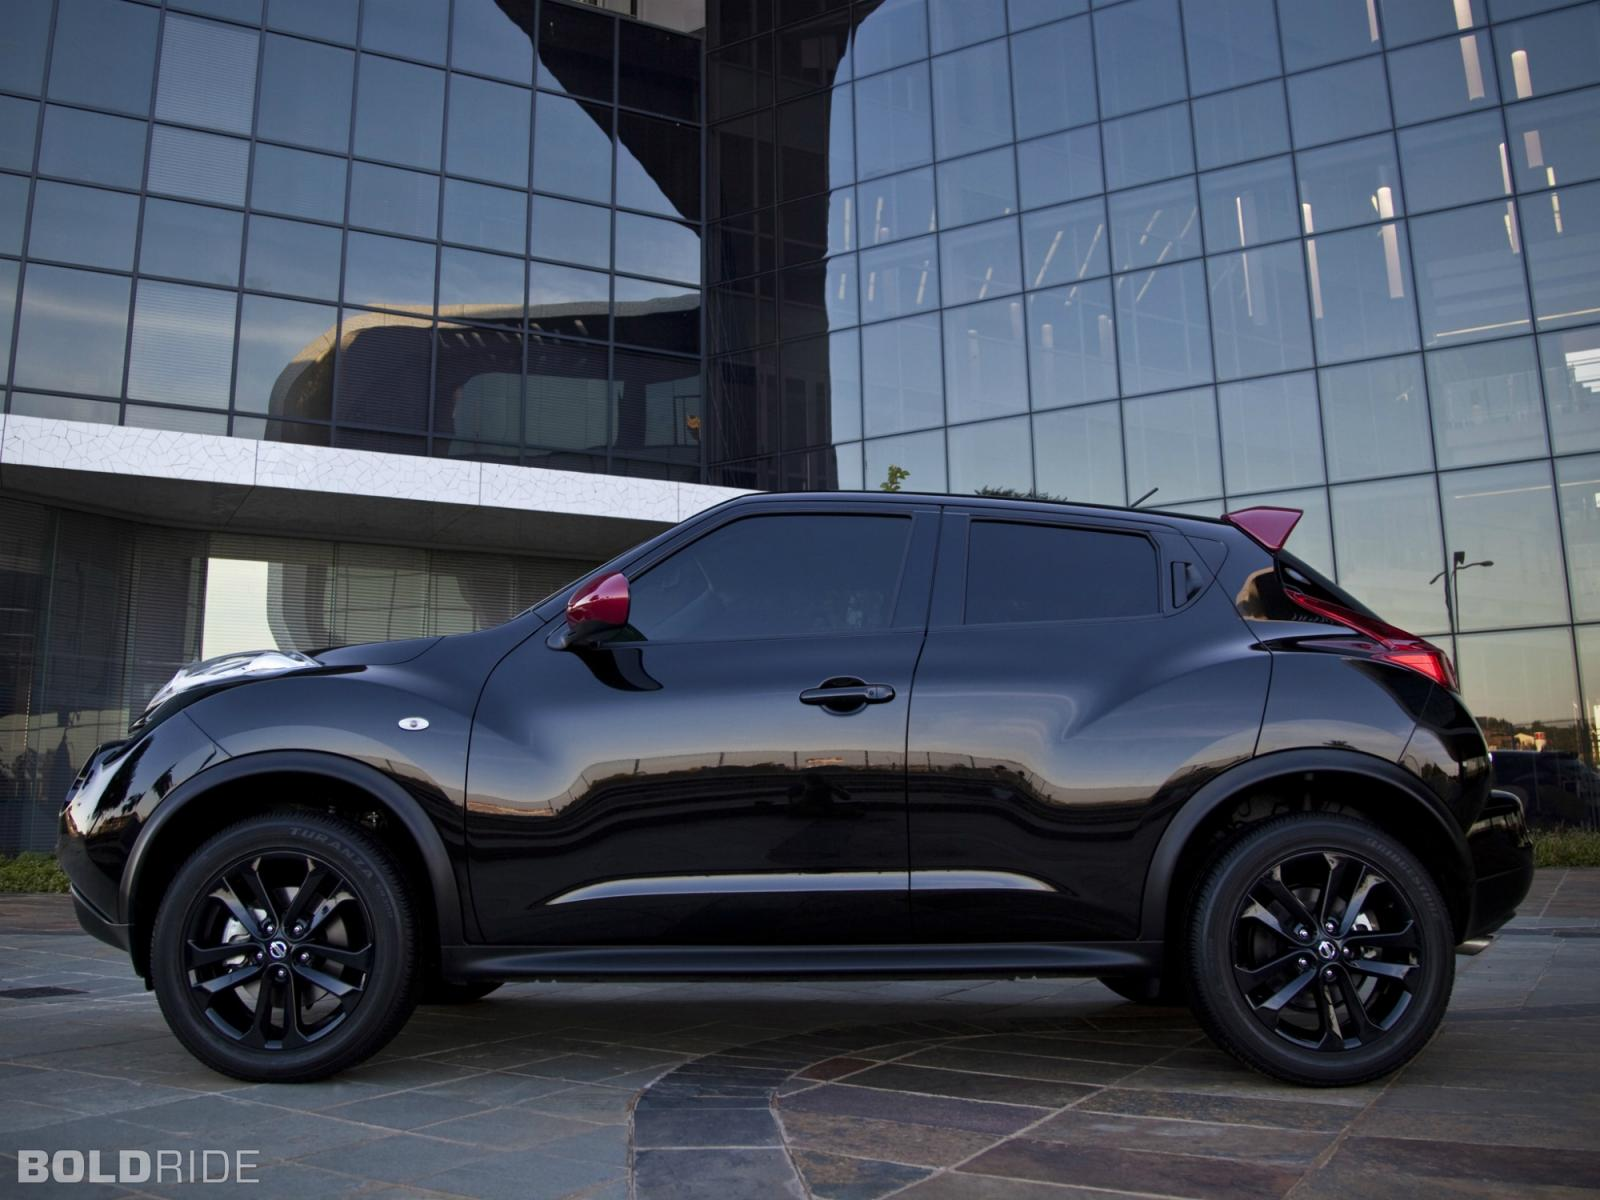 2013 nissan juke information and photos zombiedrive. Black Bedroom Furniture Sets. Home Design Ideas